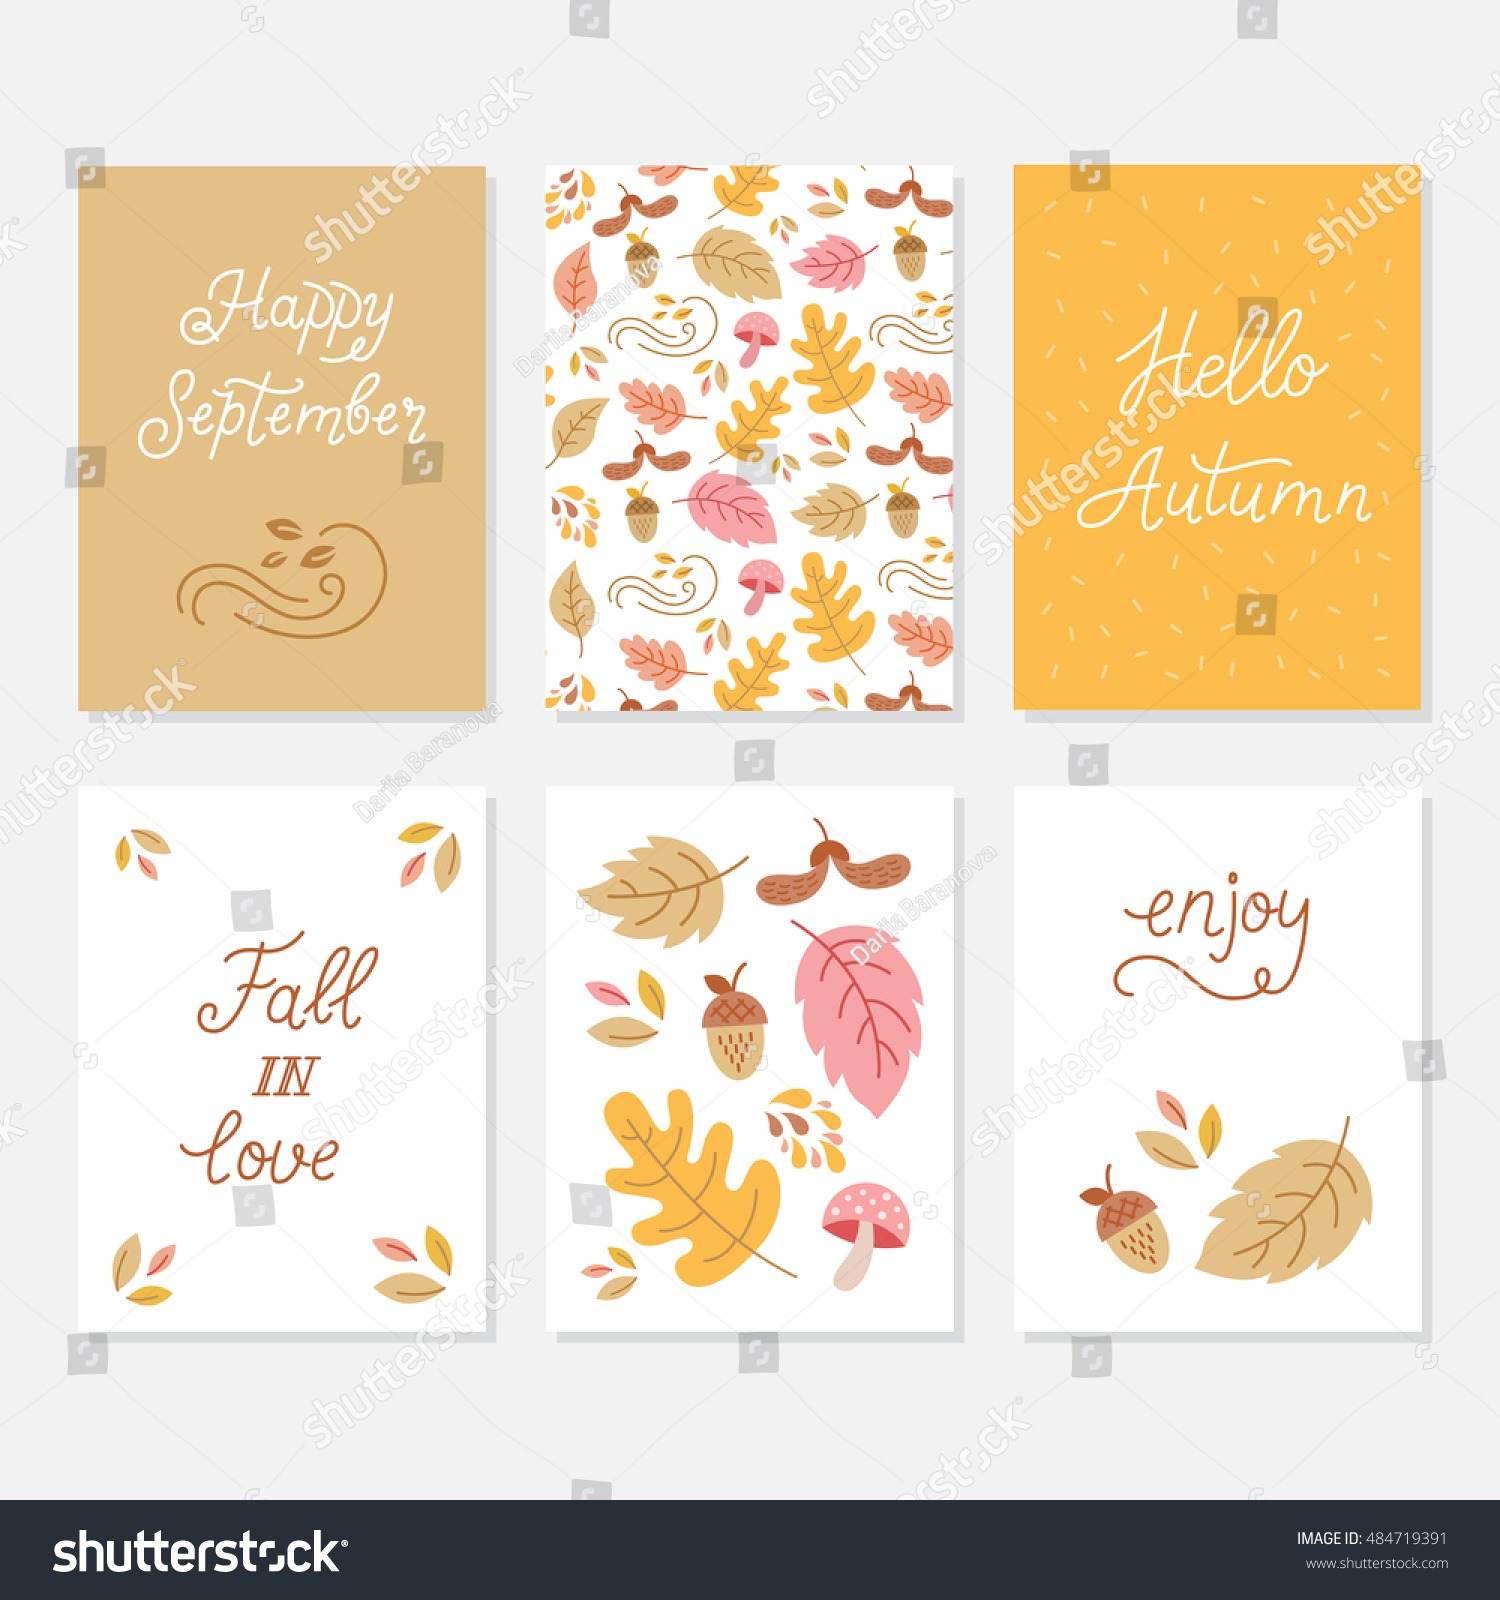 Vector Set Greeting Cards Autumn Elements Stock Vector 484719391    Shutterstock